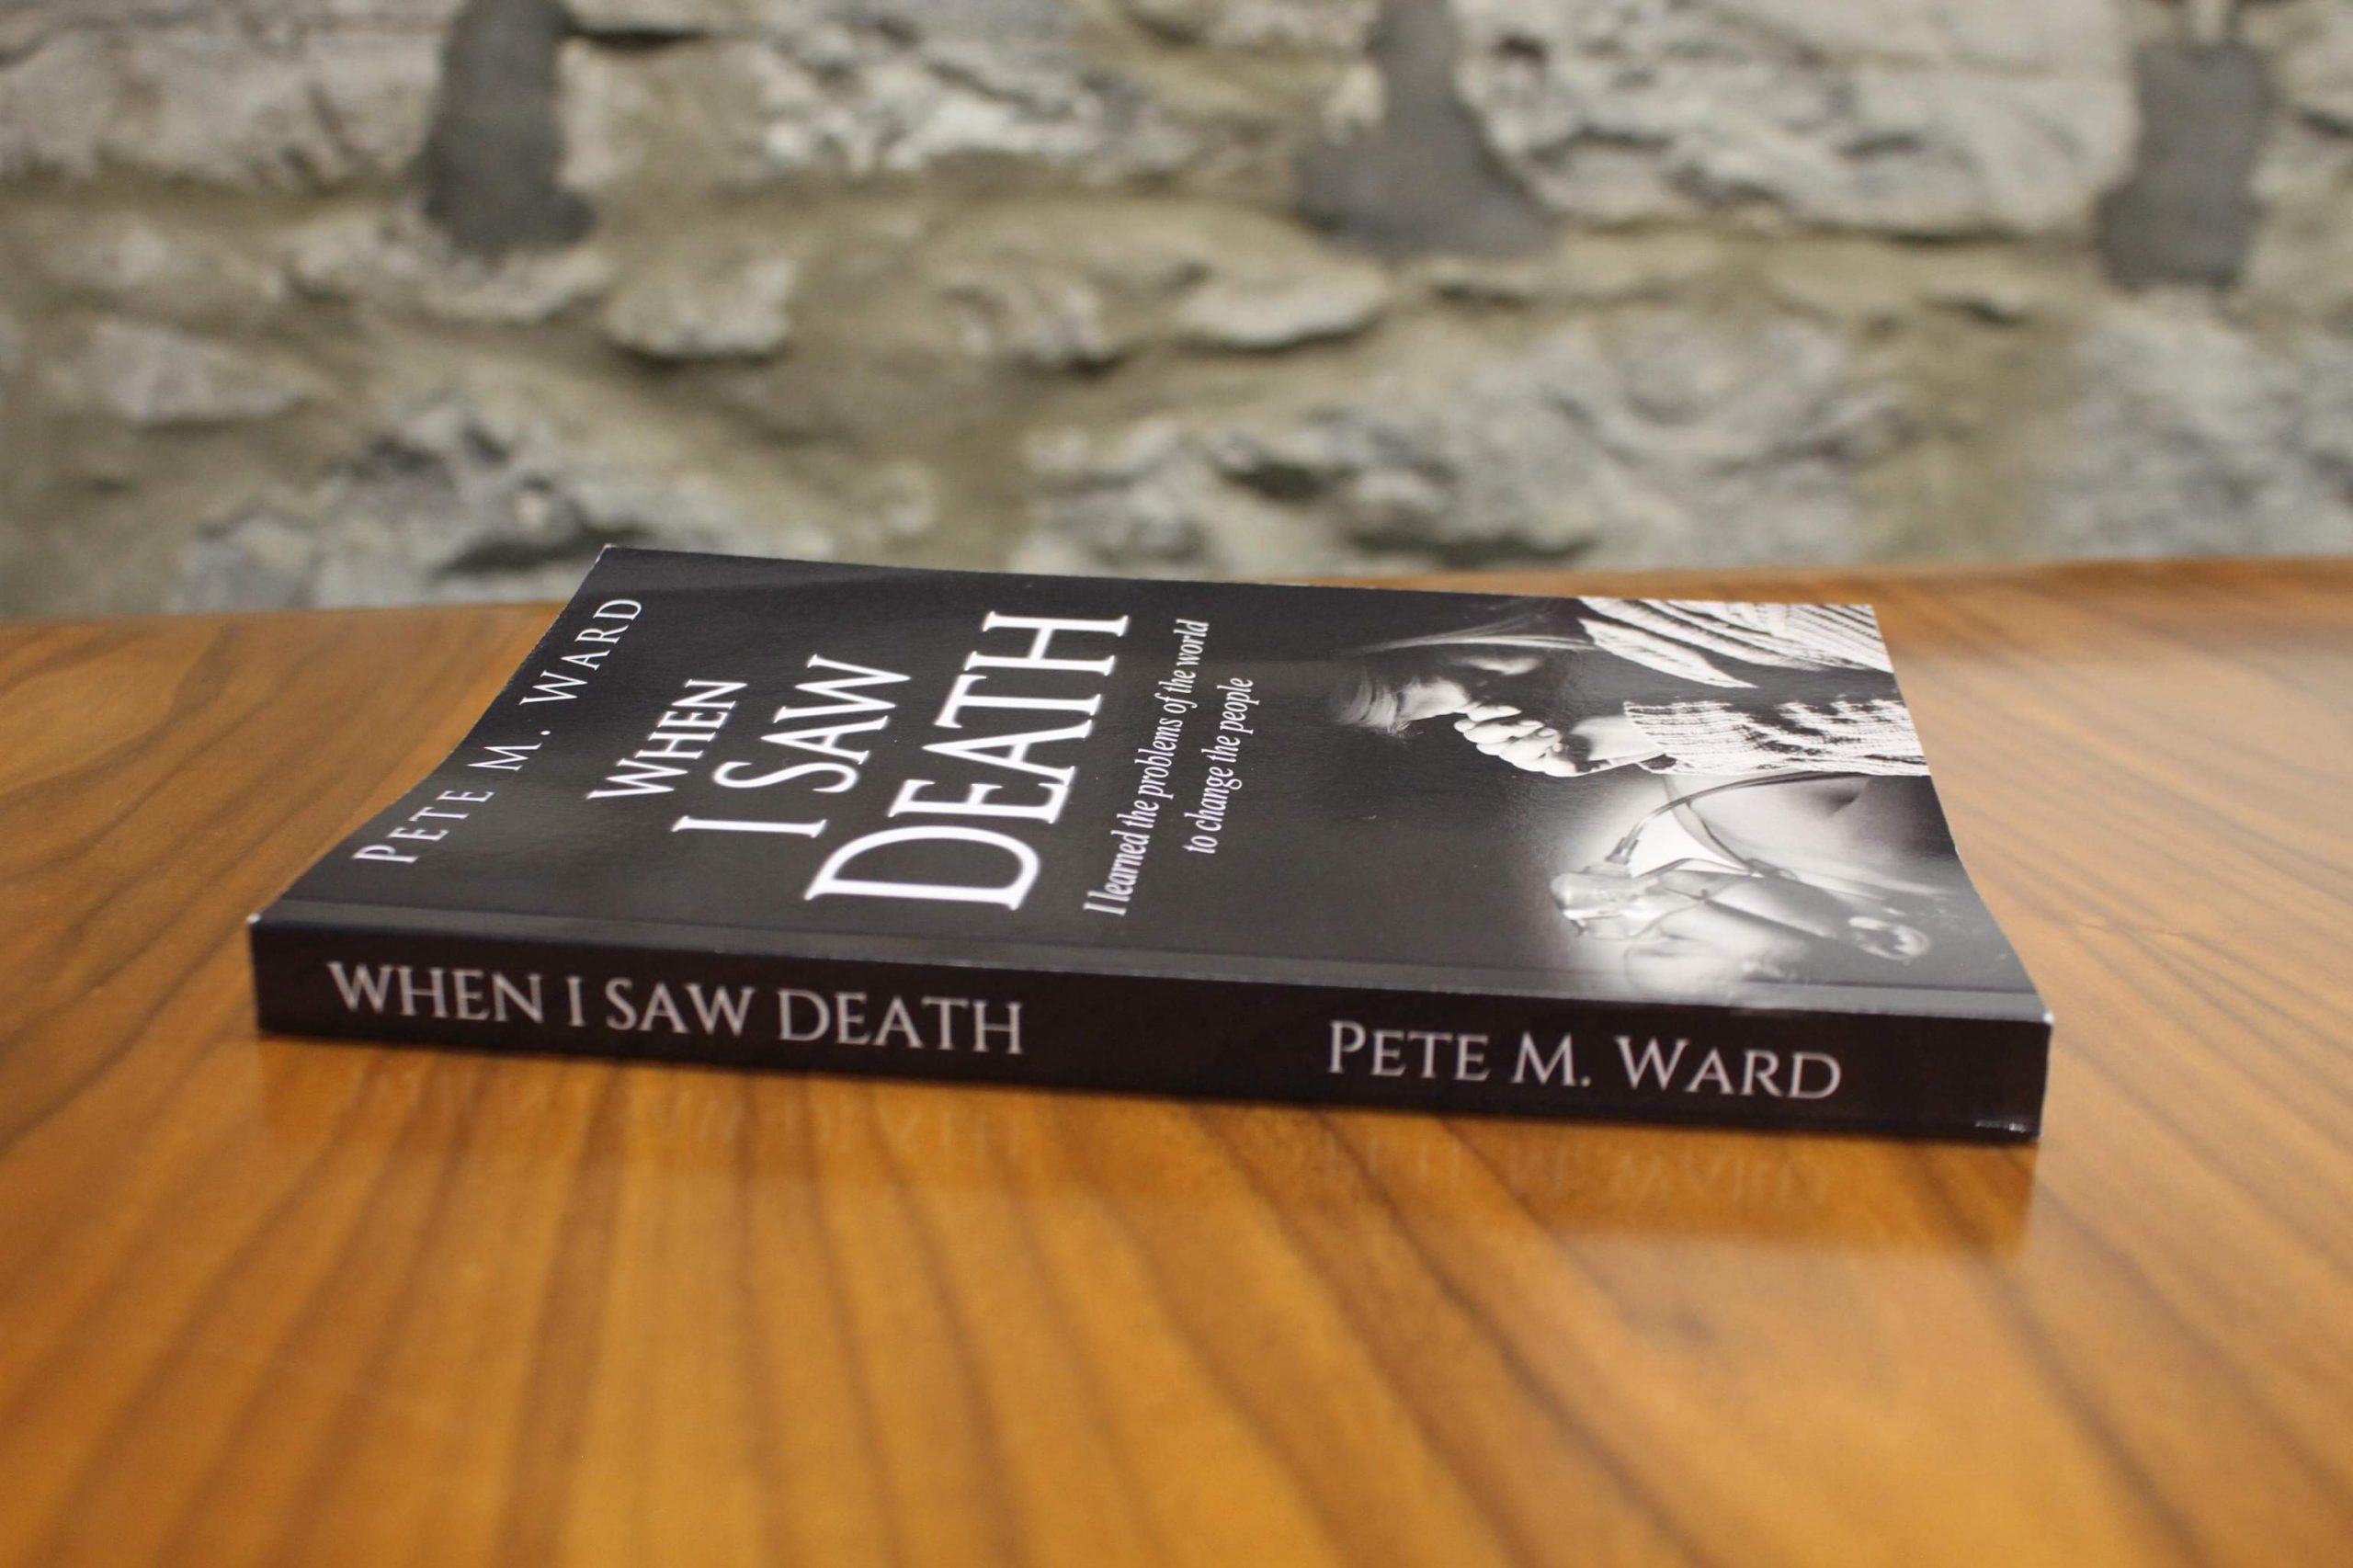 WISD Book on table